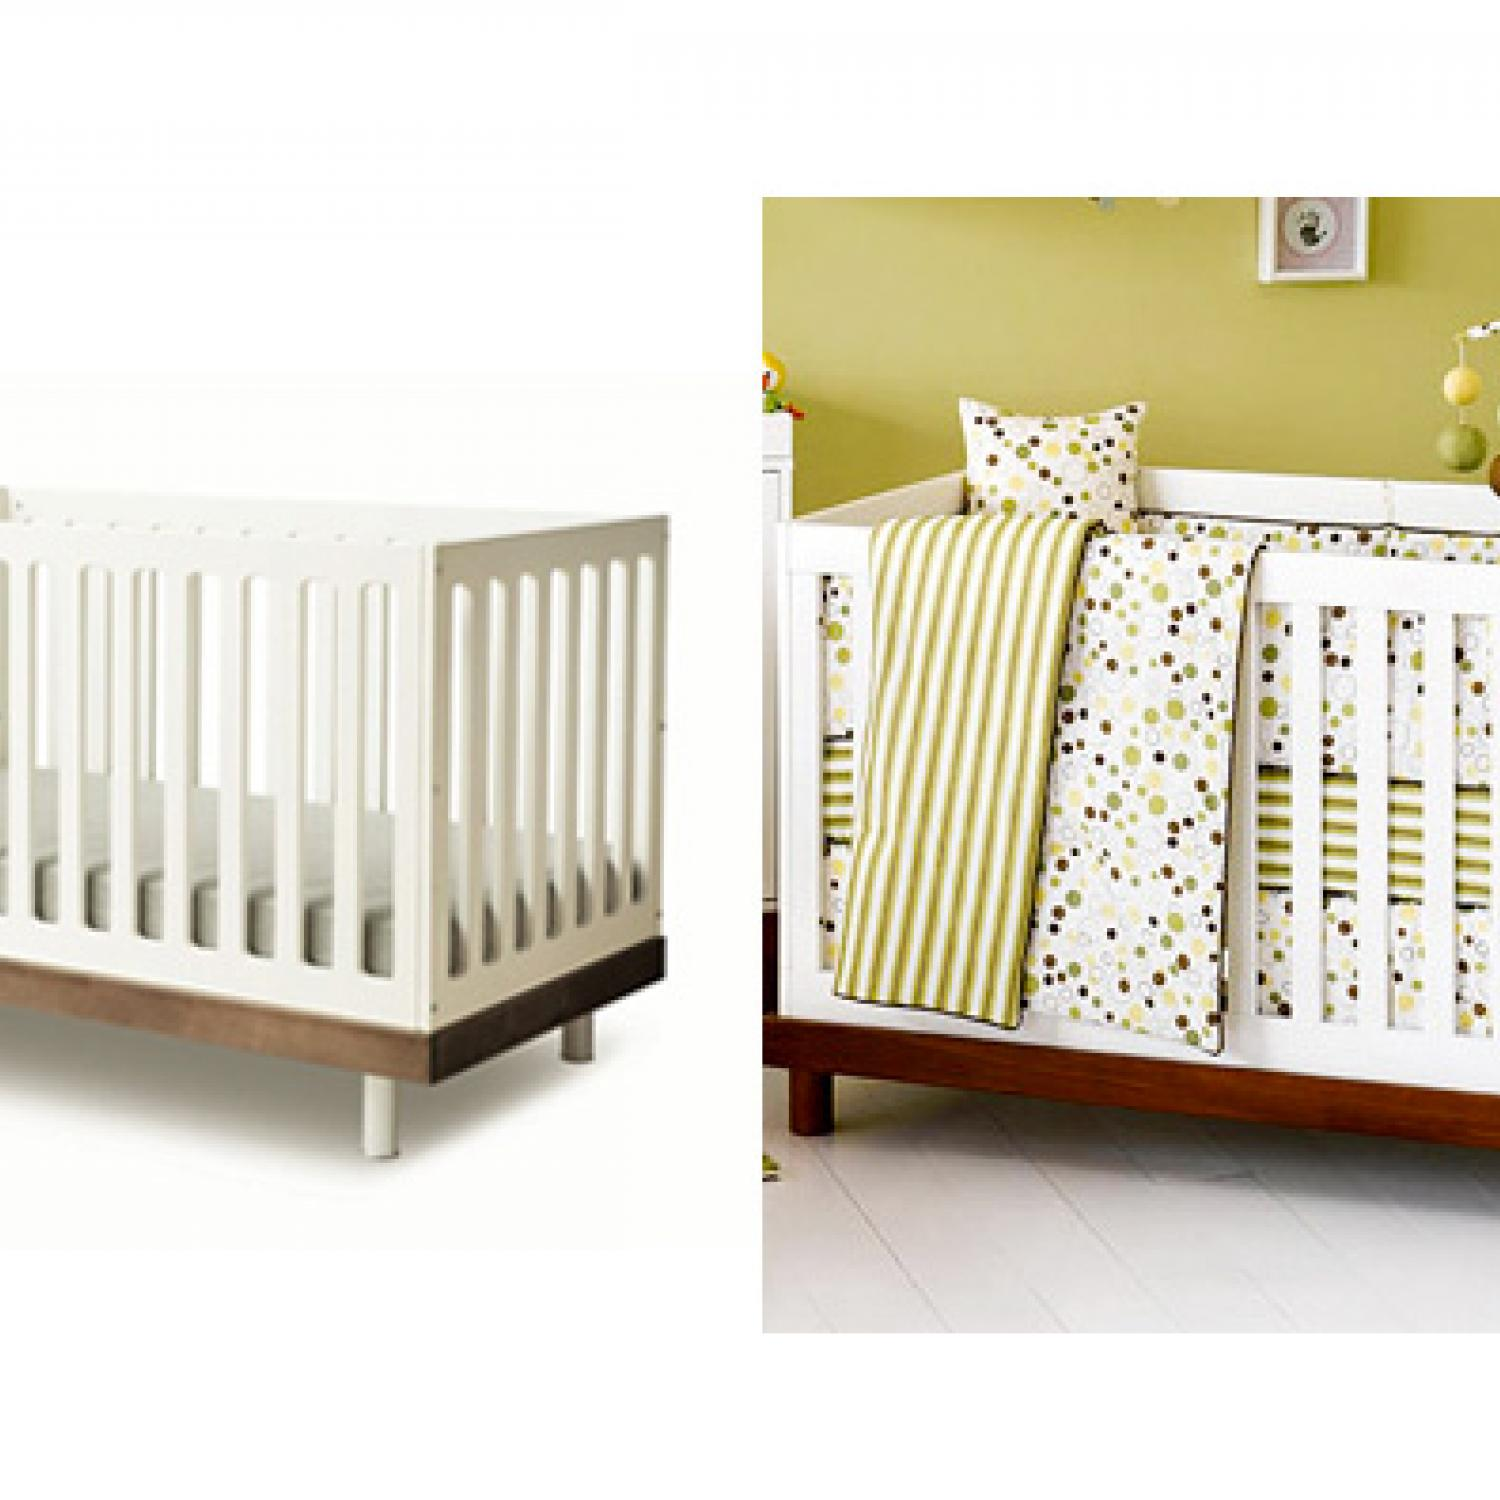 Baby bed that connects to parents bed - Baby Bed That Connects To Parents Bed 59